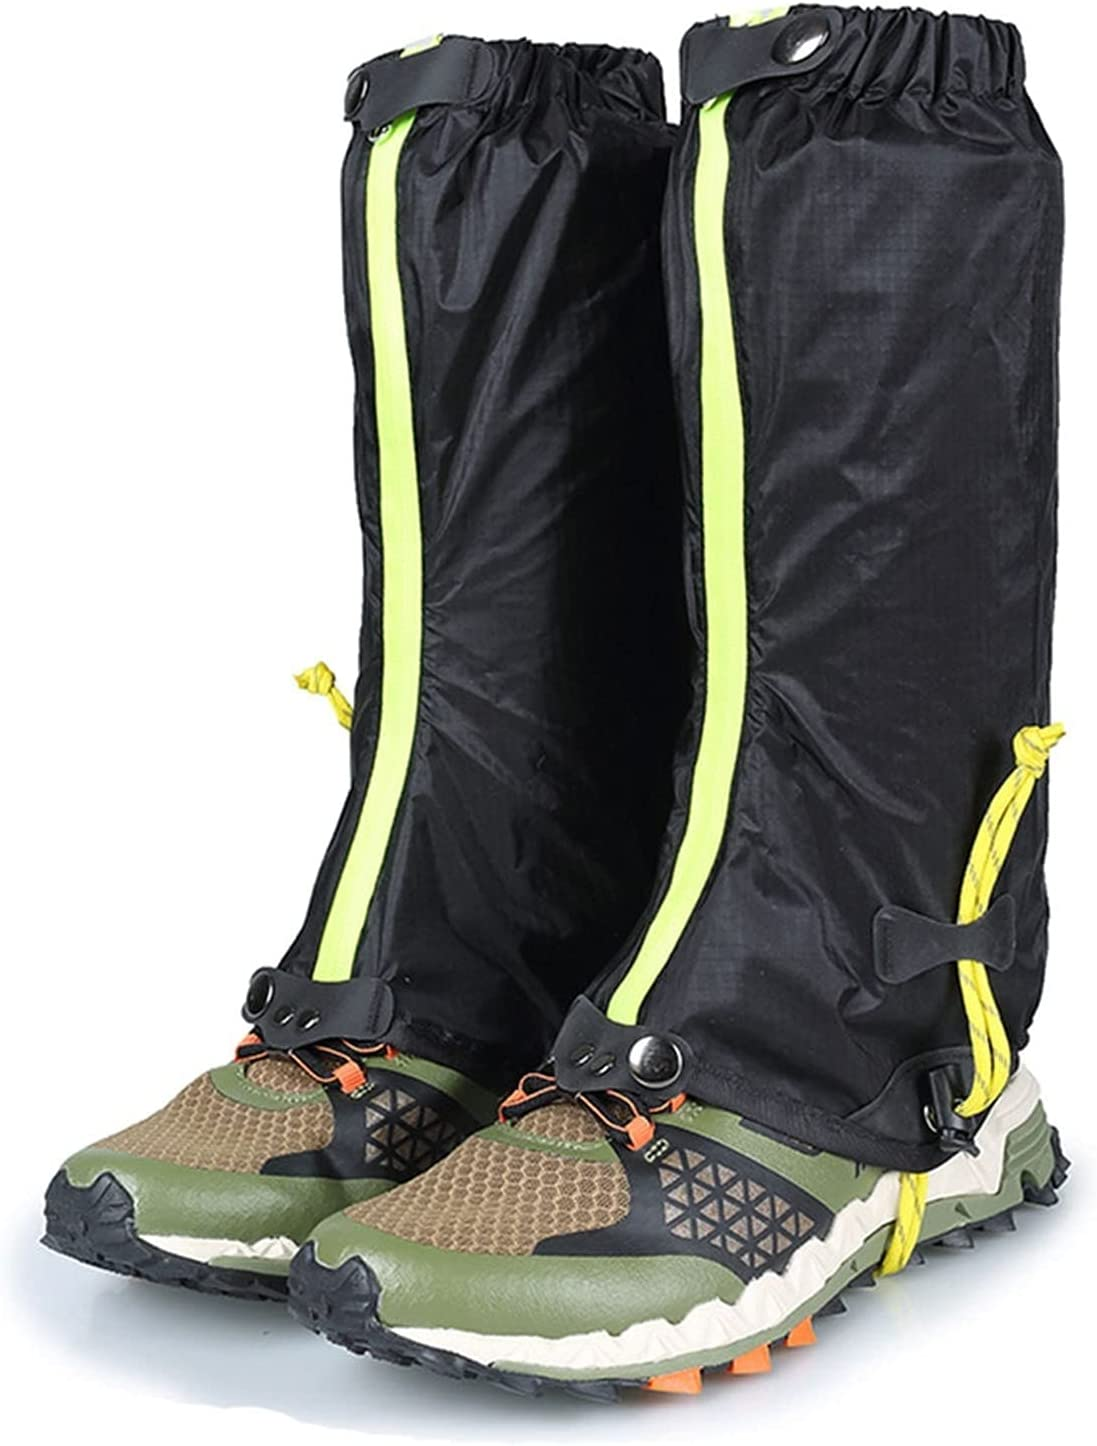 Outdoor Leggings Waterproof and New item Anti-Snake Shoe Covers Le low-pricing Bite